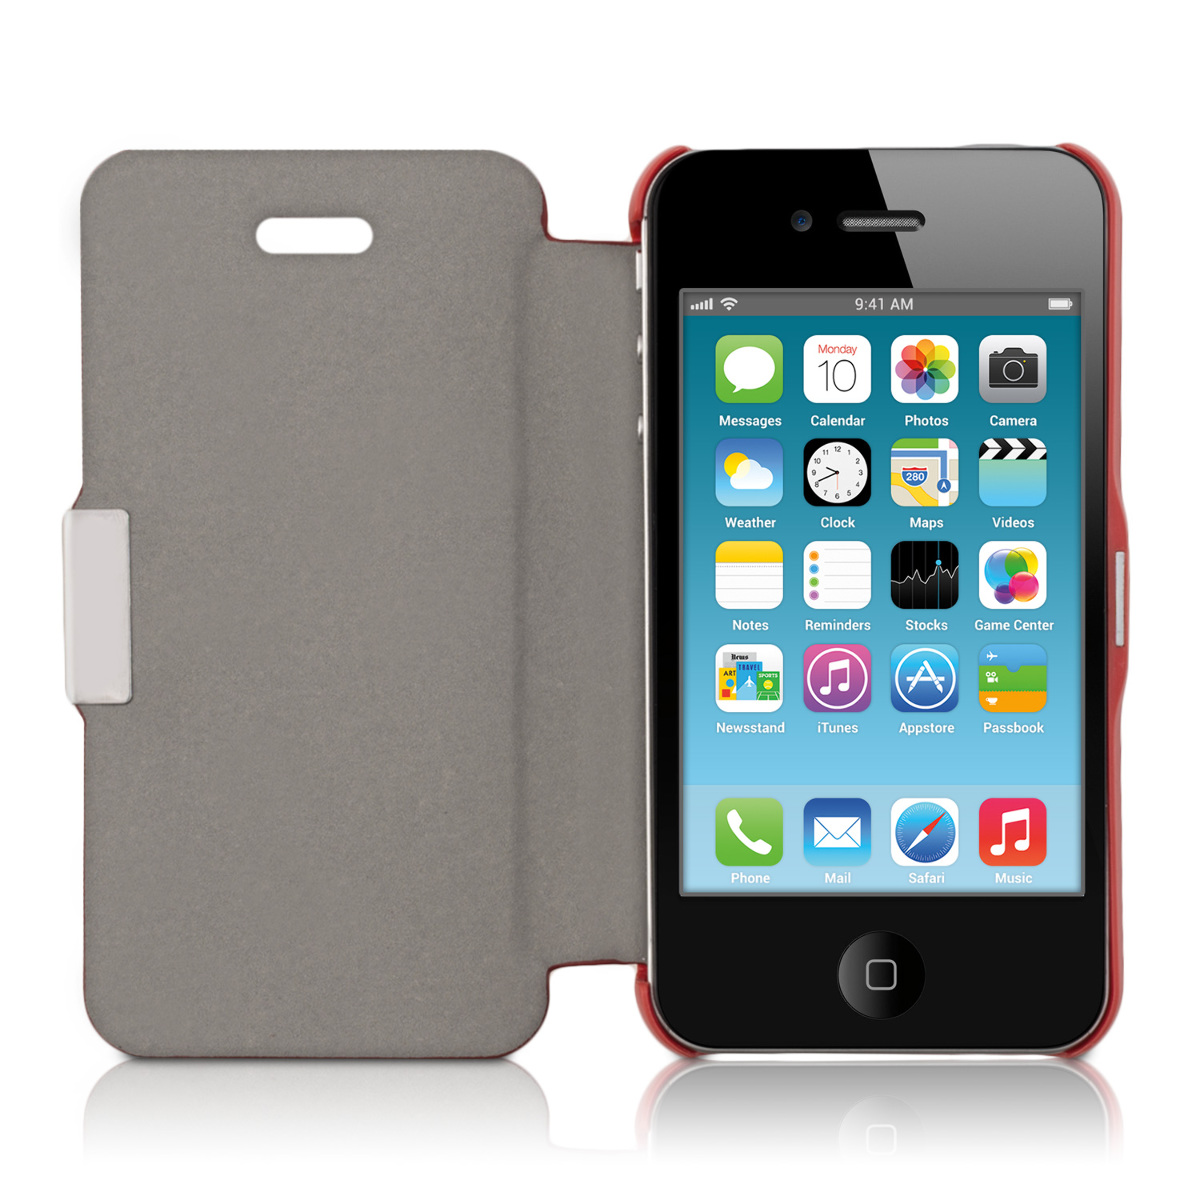 Flip cover para apple iphone 4 4s rojo funda carcasa protectora trasera ebay - Fundas iphone 4 4s ...